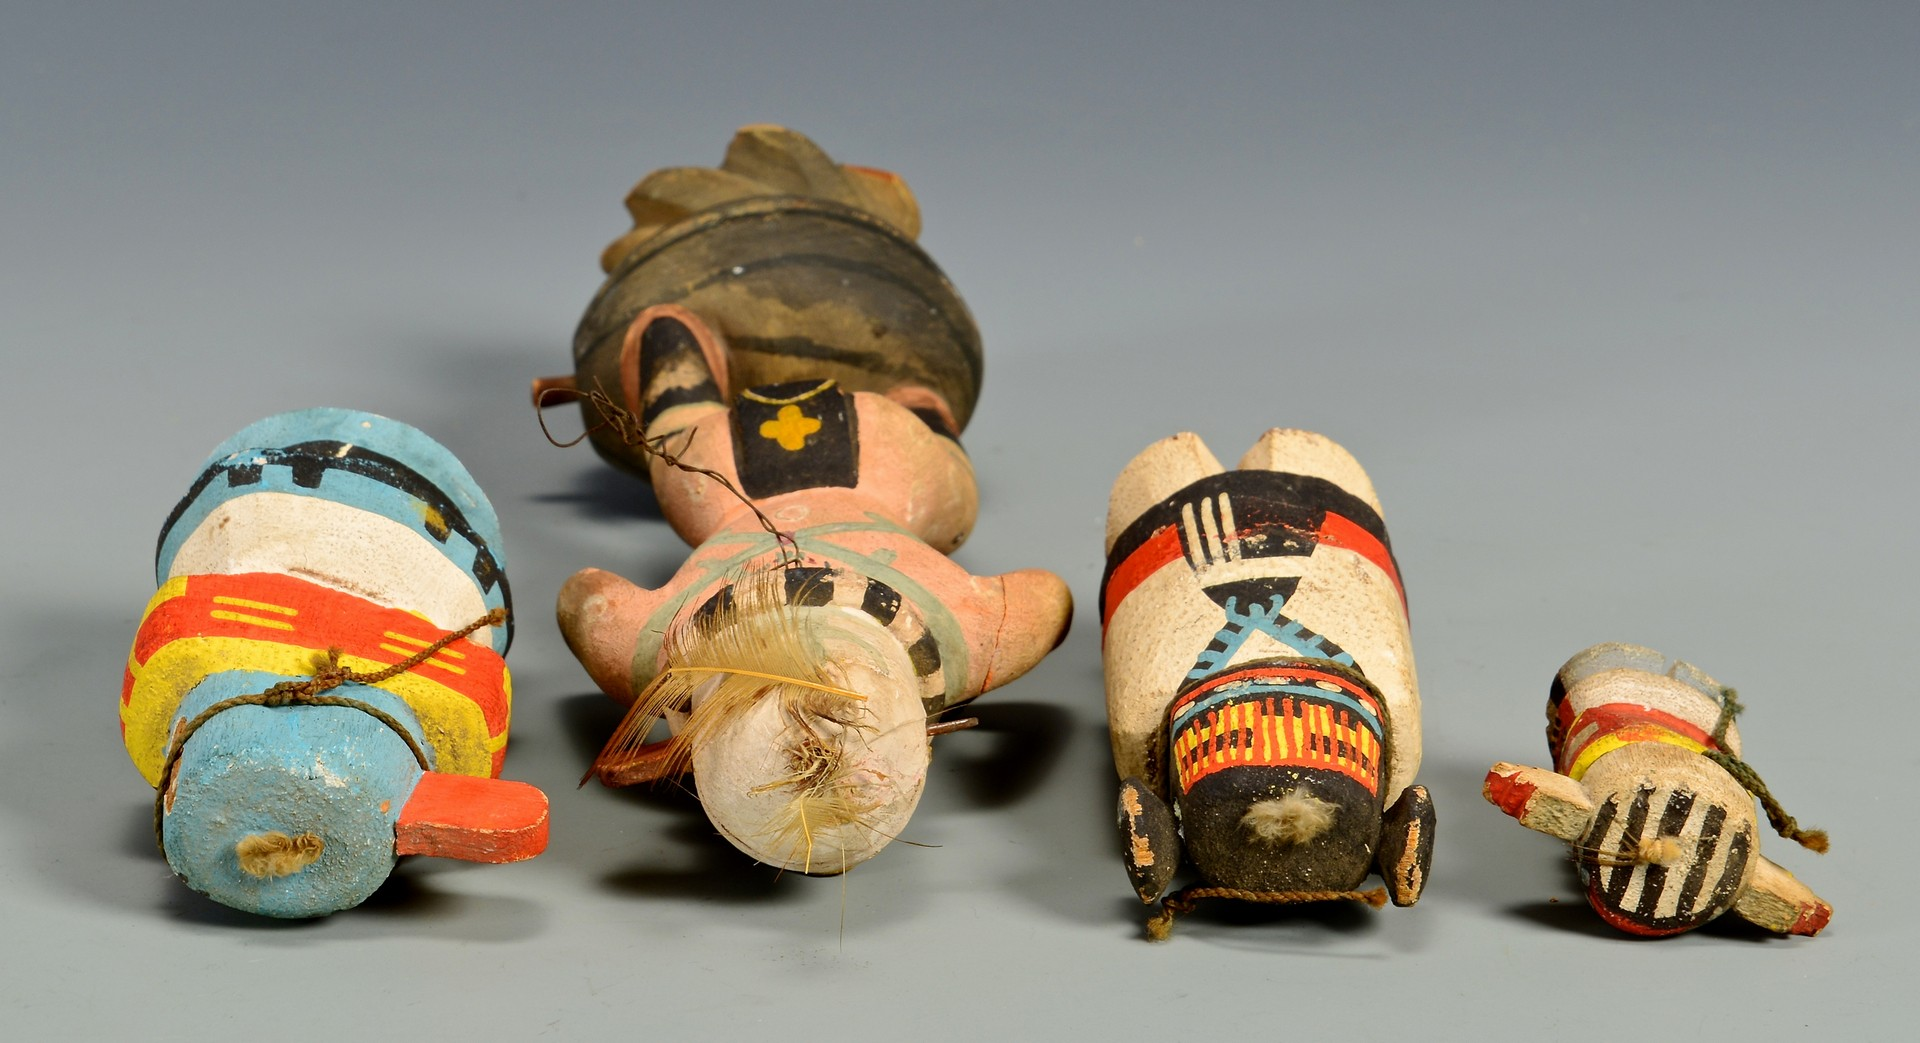 Lot 621: 4 Hopi Native American Kachina Dolls